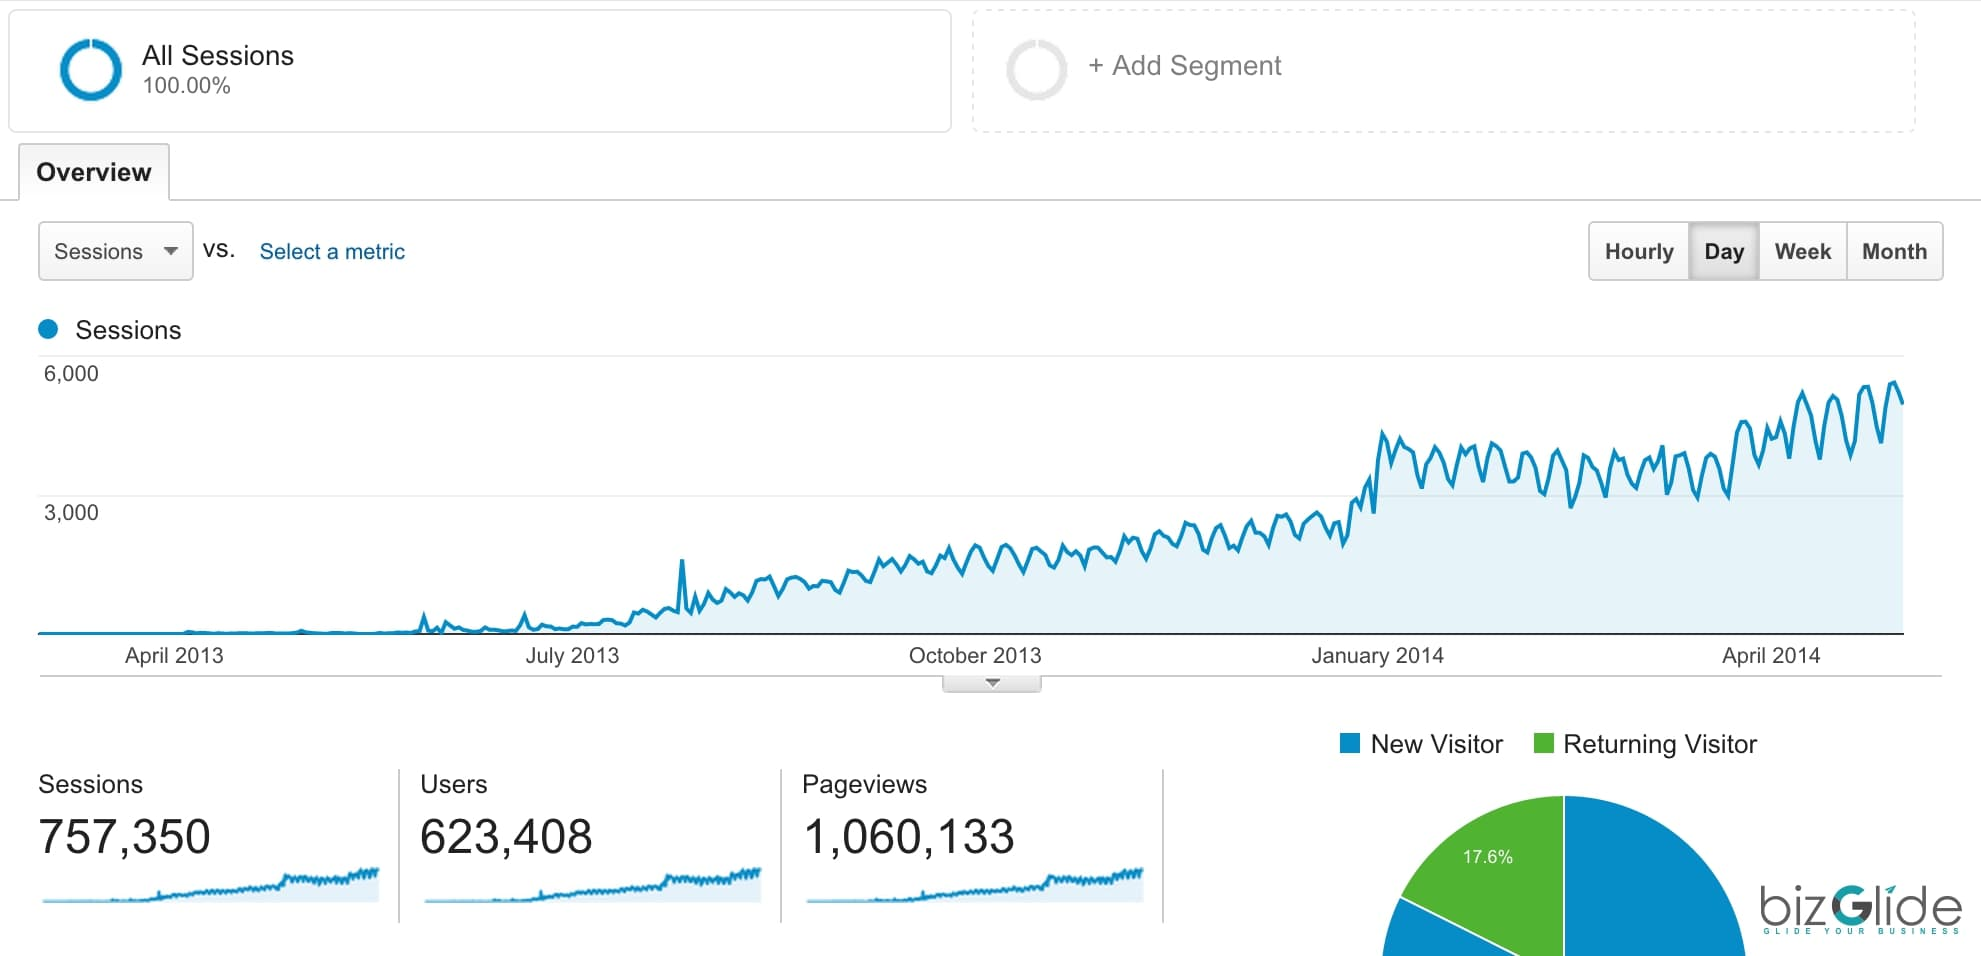 increase in organic traffic on website